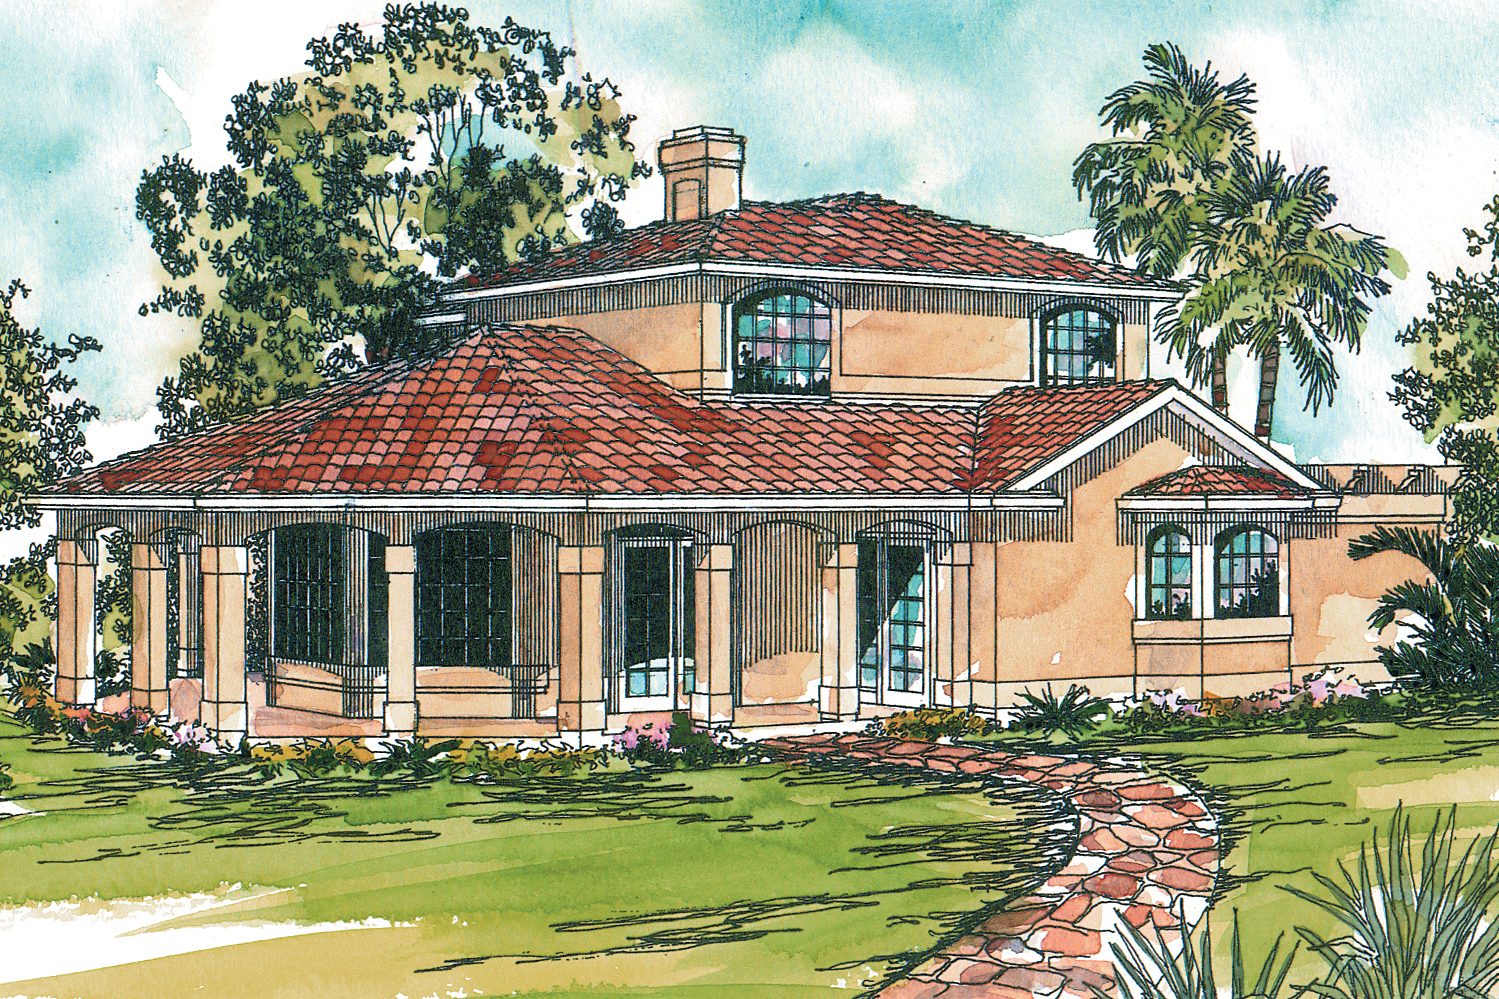 Mediterranean house plans lauderdale 11 037 associated - Mediterranean house floor plan and design ...